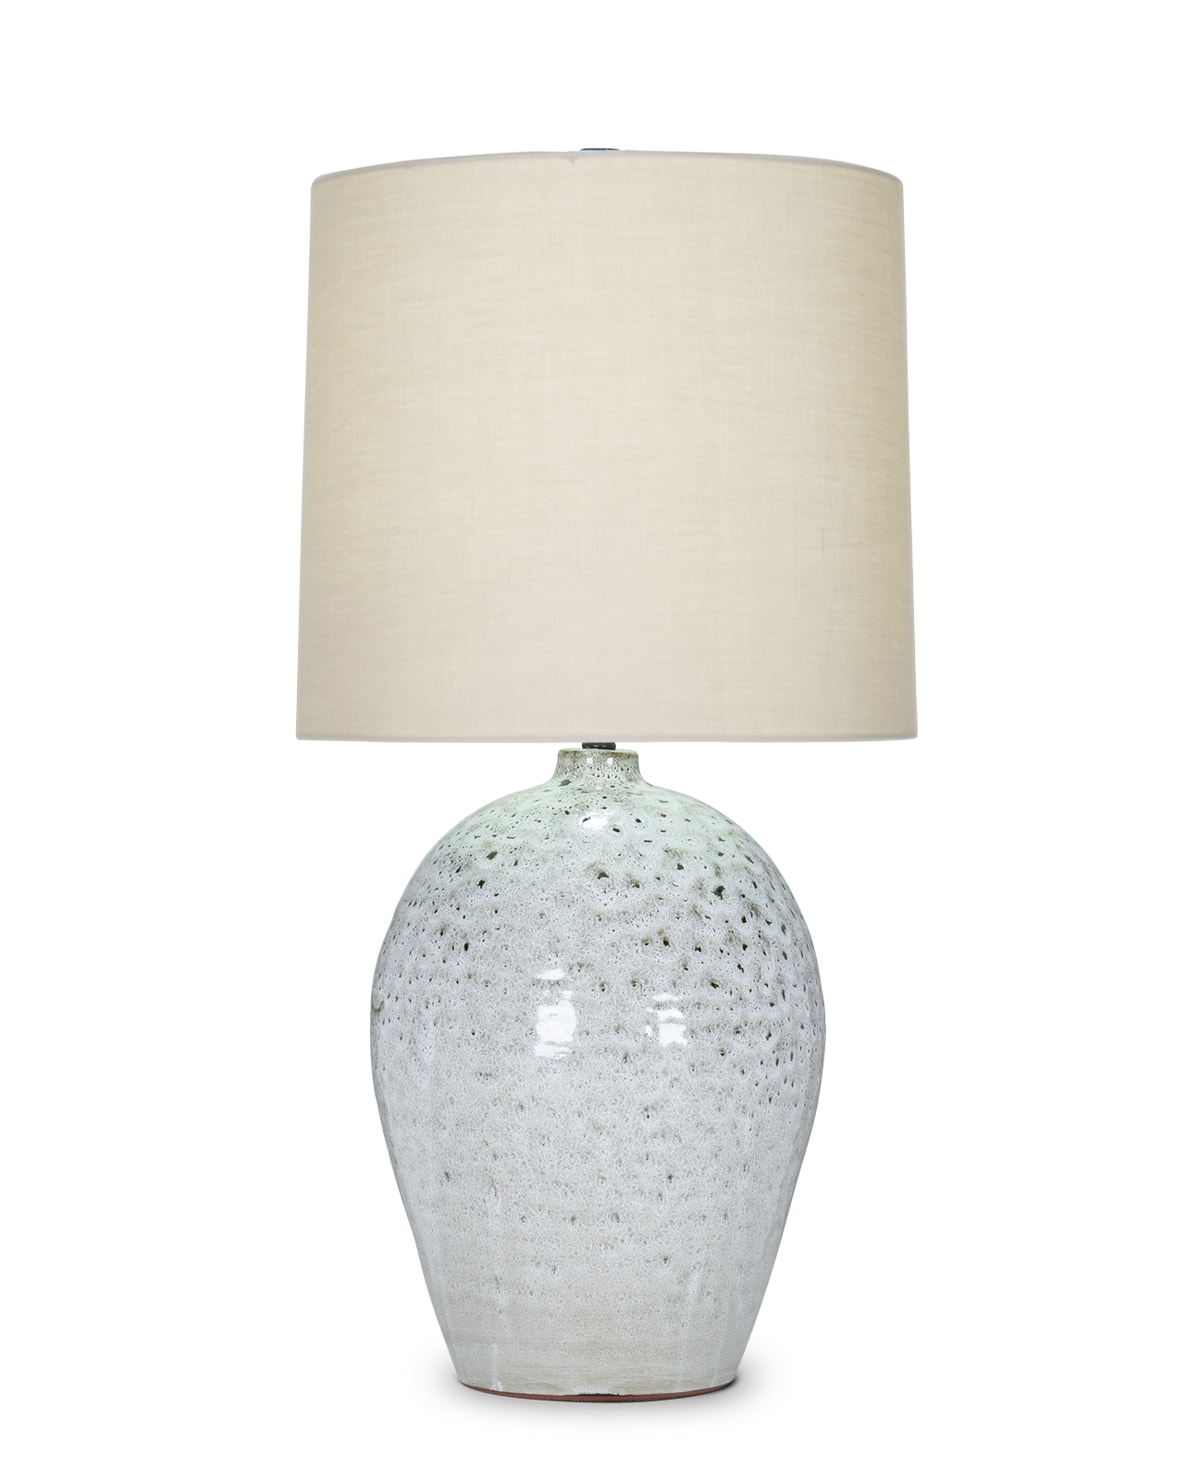 FlowDecor Connor Table Lamp in ceramic with ivory with taupe & black finish and beige cotton tapered drum shade (# 4501)